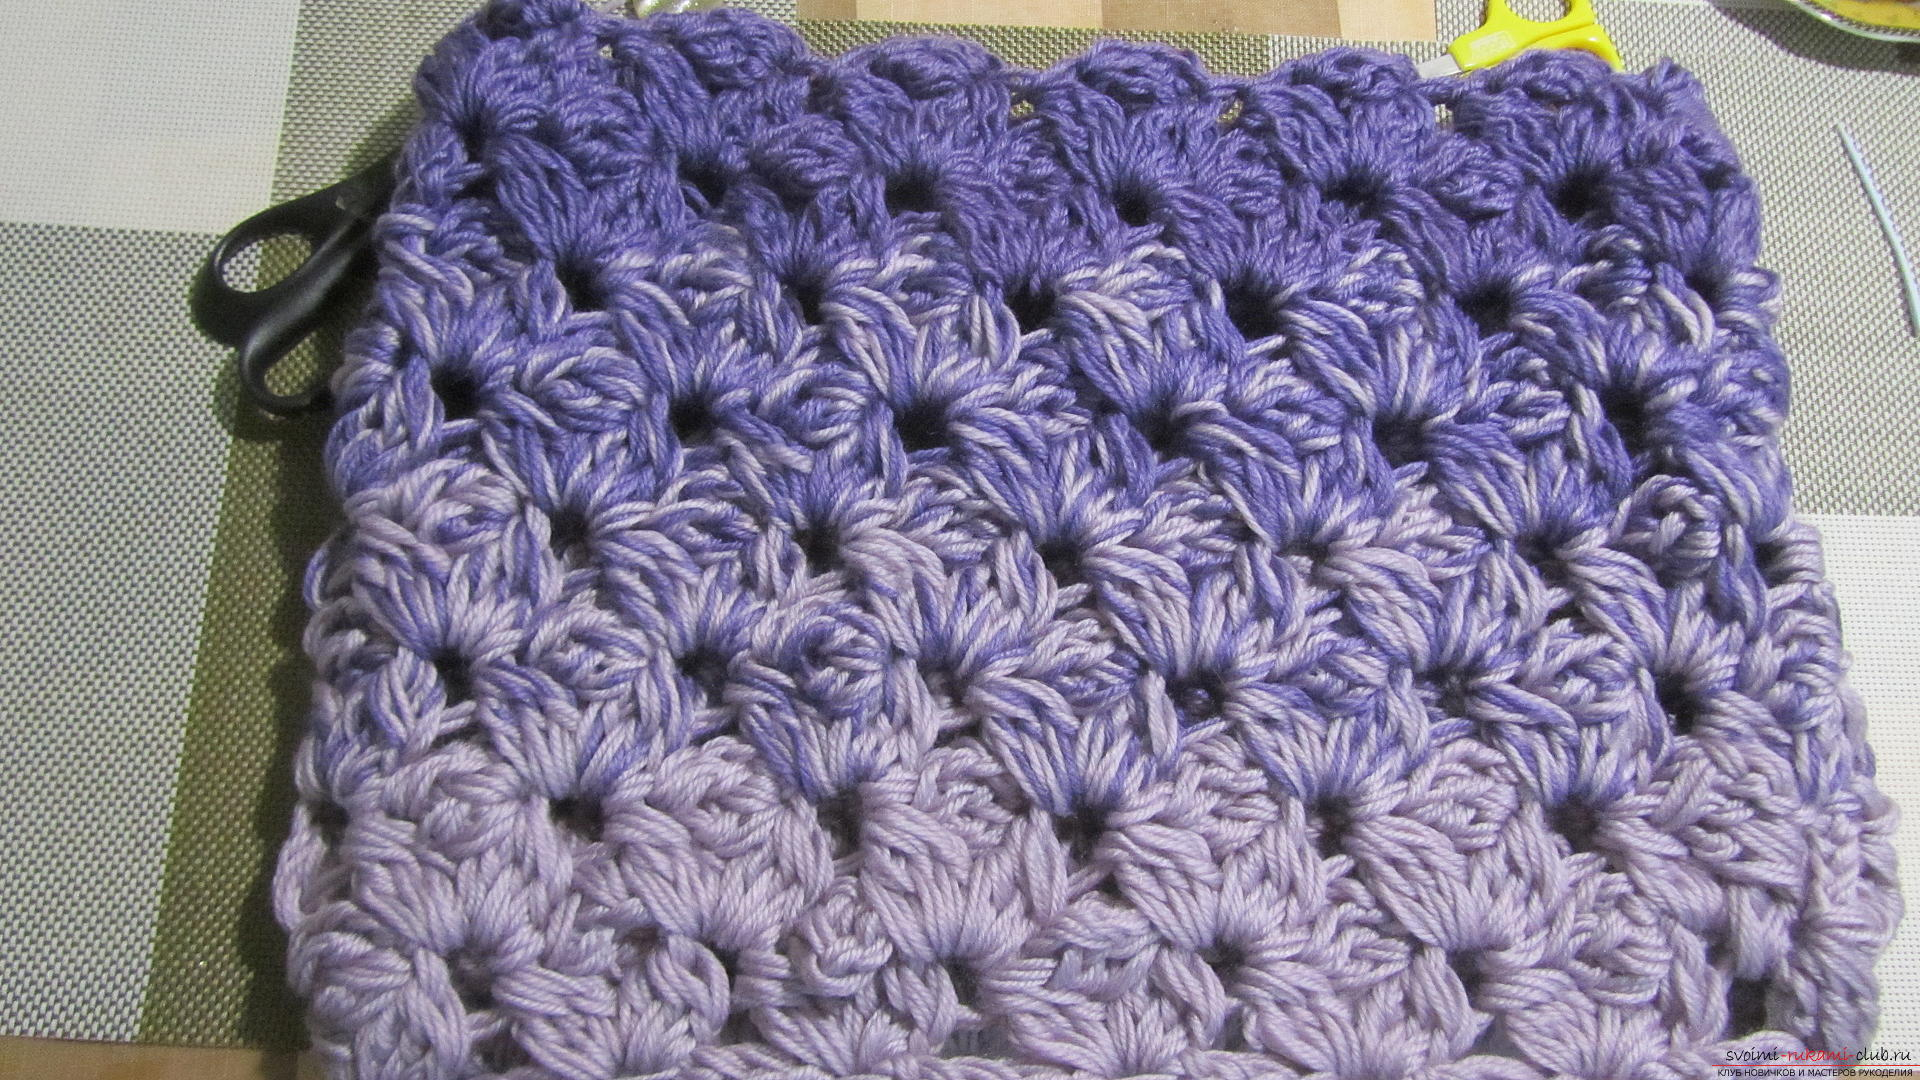 This detailed master class with a photo contains crochet snatch crochet patterns. Picture # 27